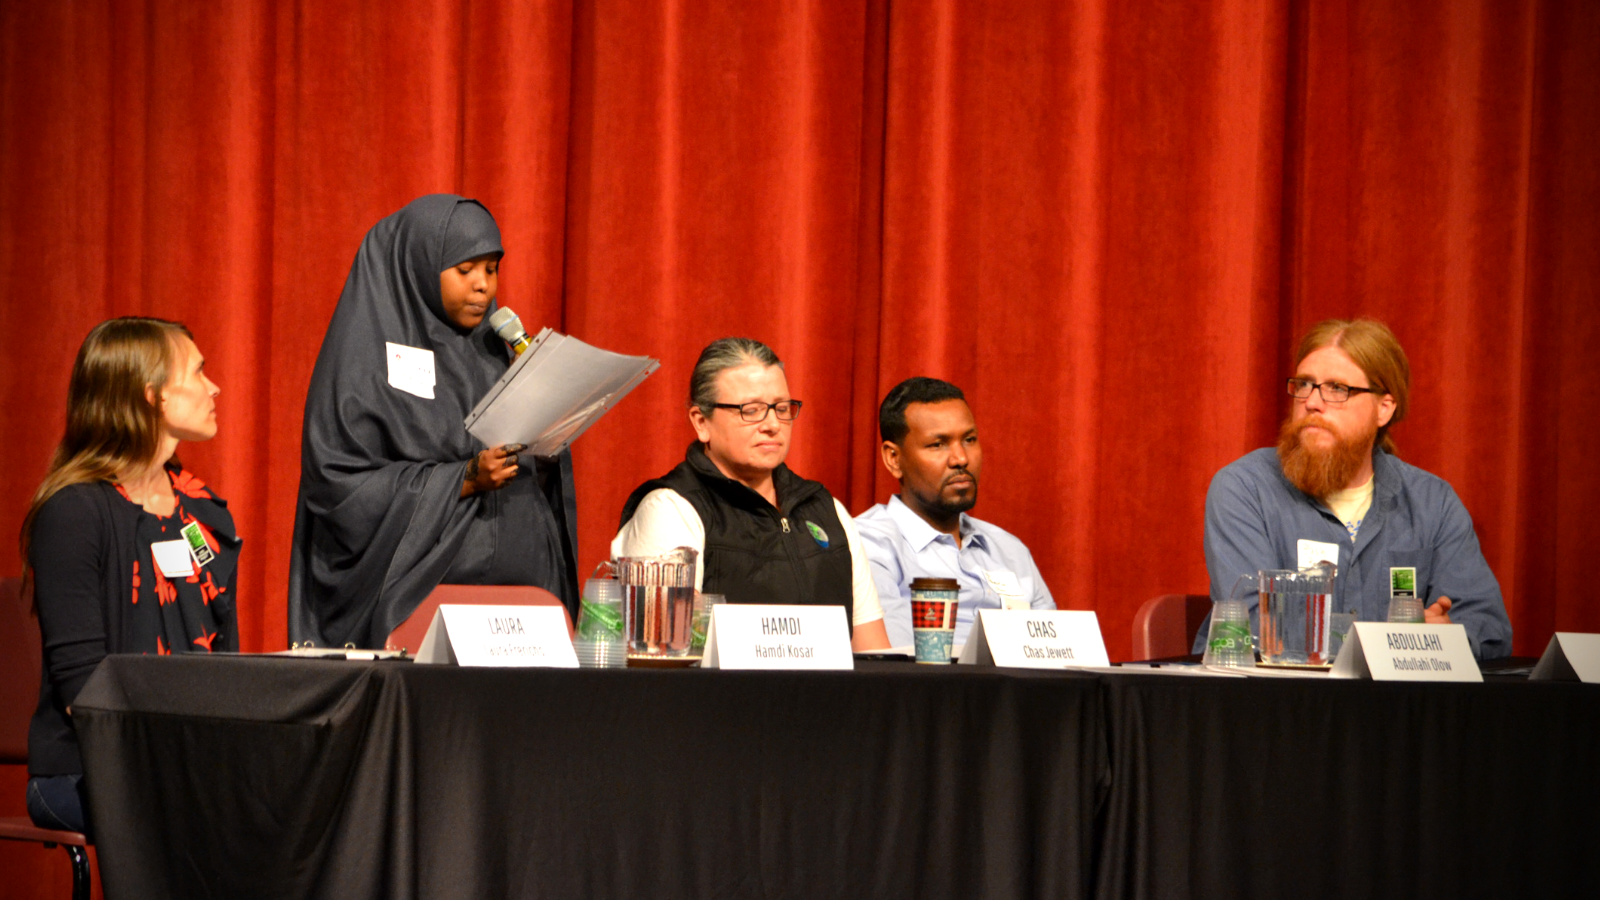 A panel of speakers at 2018's Educate the Canidate